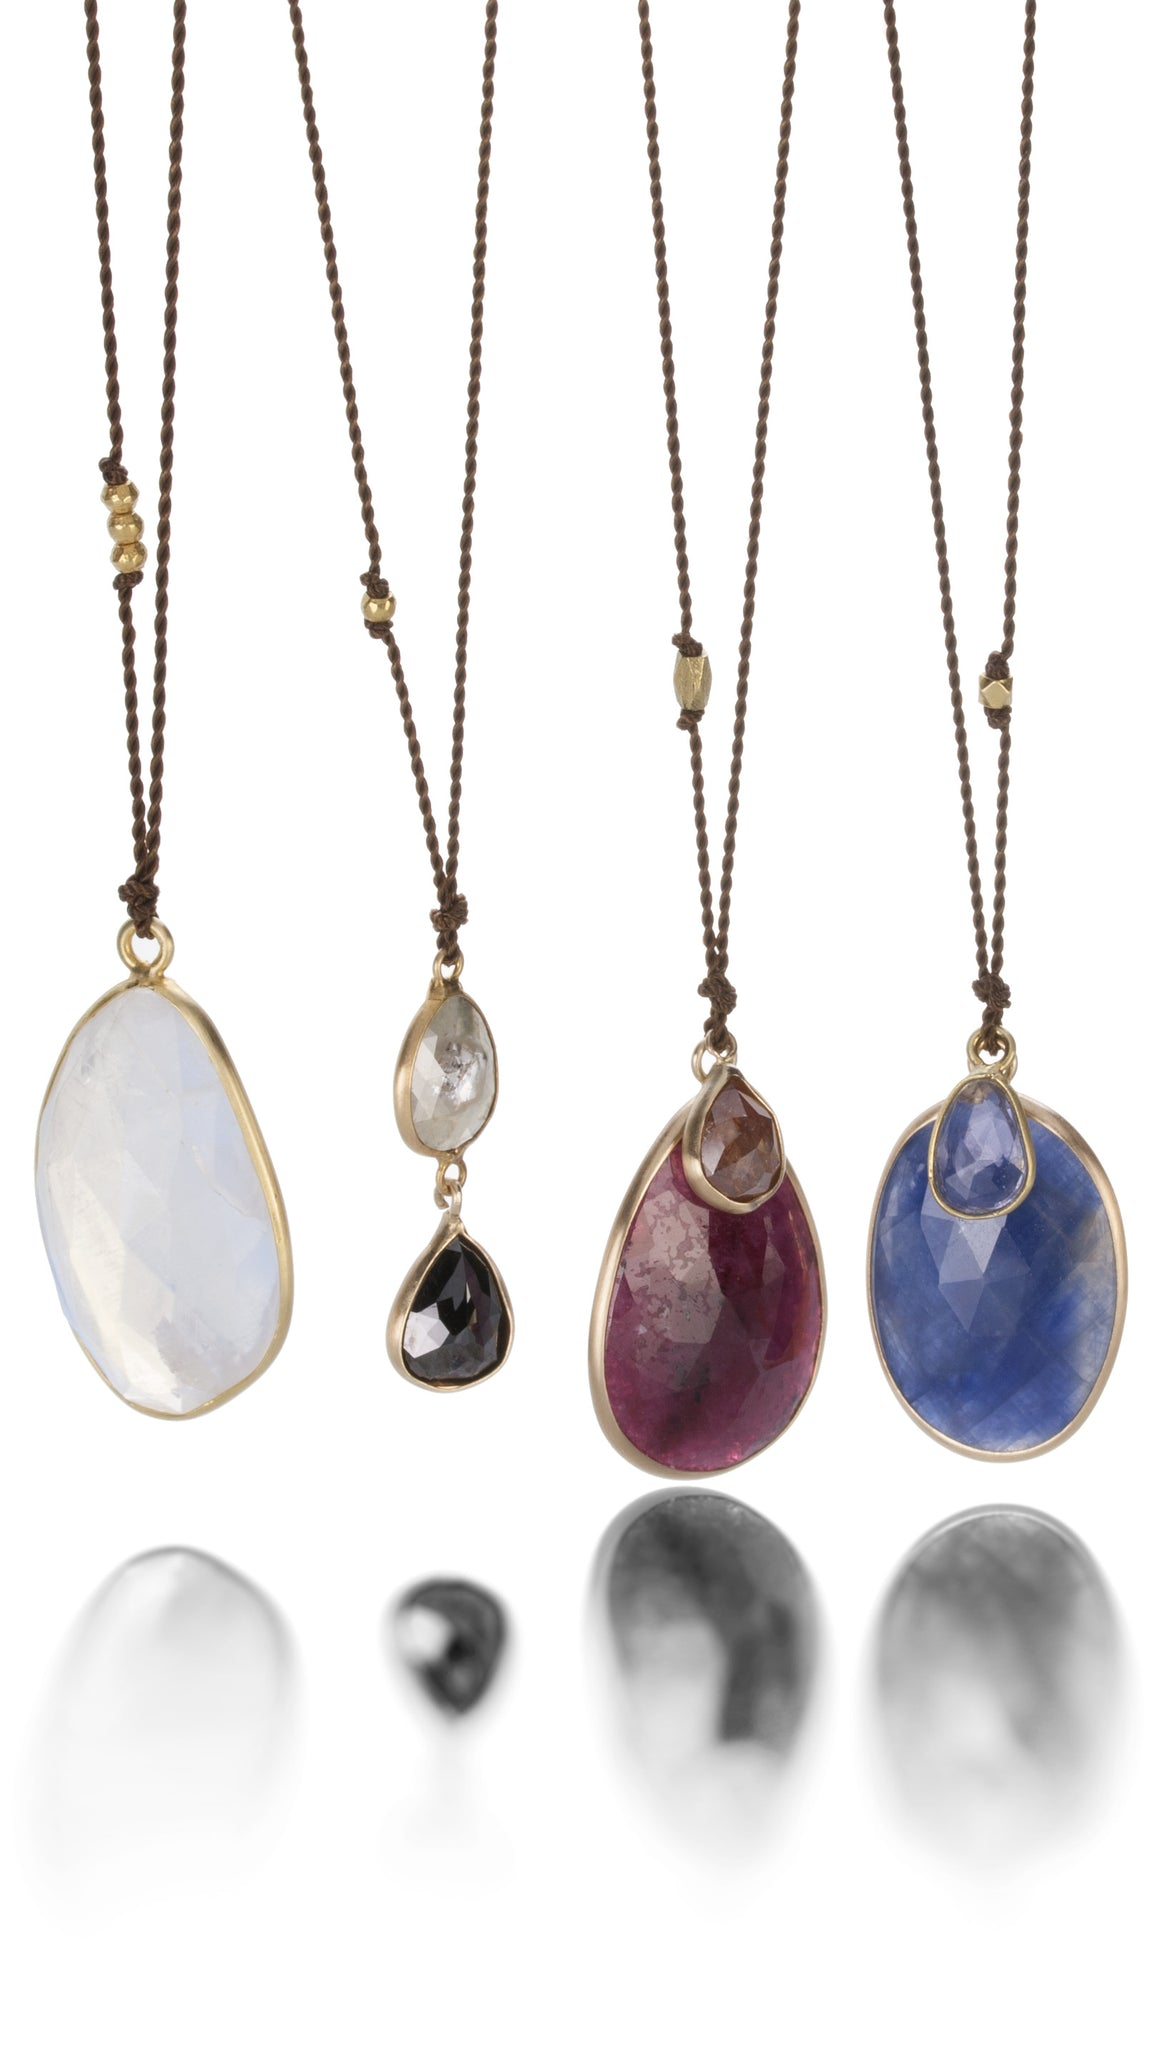 Margaret Solow | Designer Jewelry | Trunk Show | Boston Event